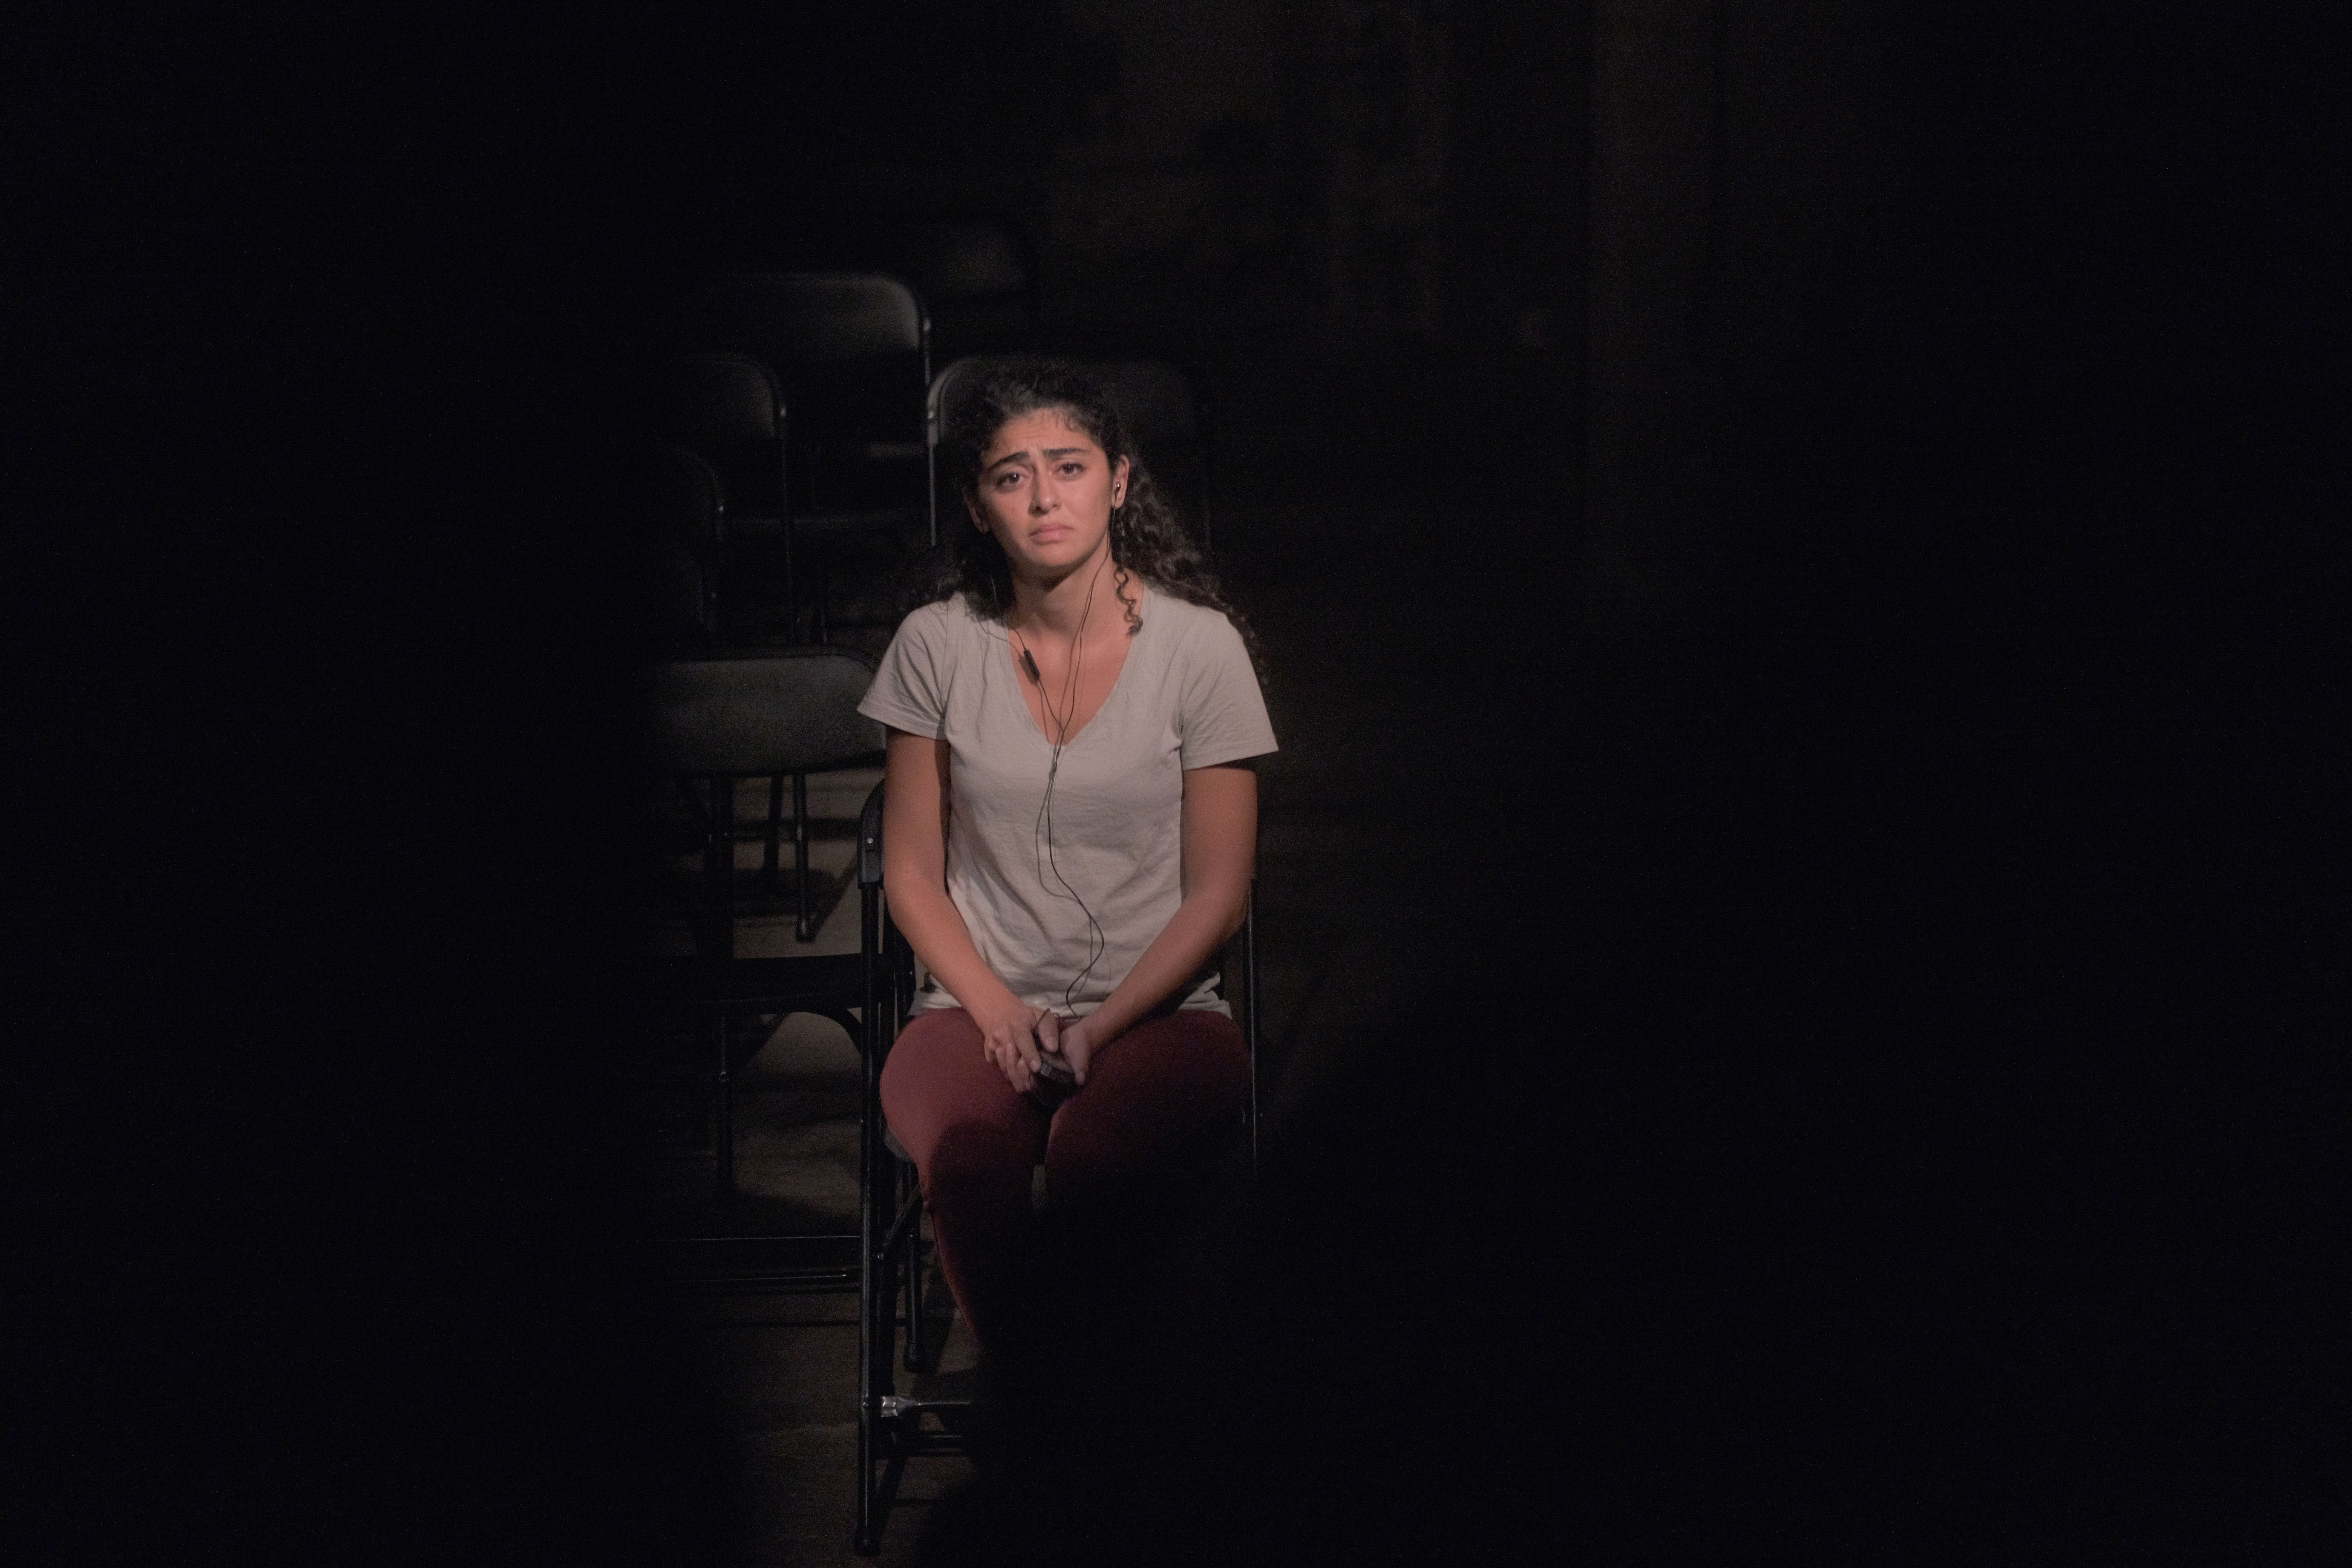 """Performing No Demand No Supply: A Re-reading of Lebanon's 2016 Sex Trafficking Scandal,"""" a documentary theatre performance under the patronage of the AUB Theater Initiative and in collaboration with NGO KAFA. (Nataly Hindaoui)"""